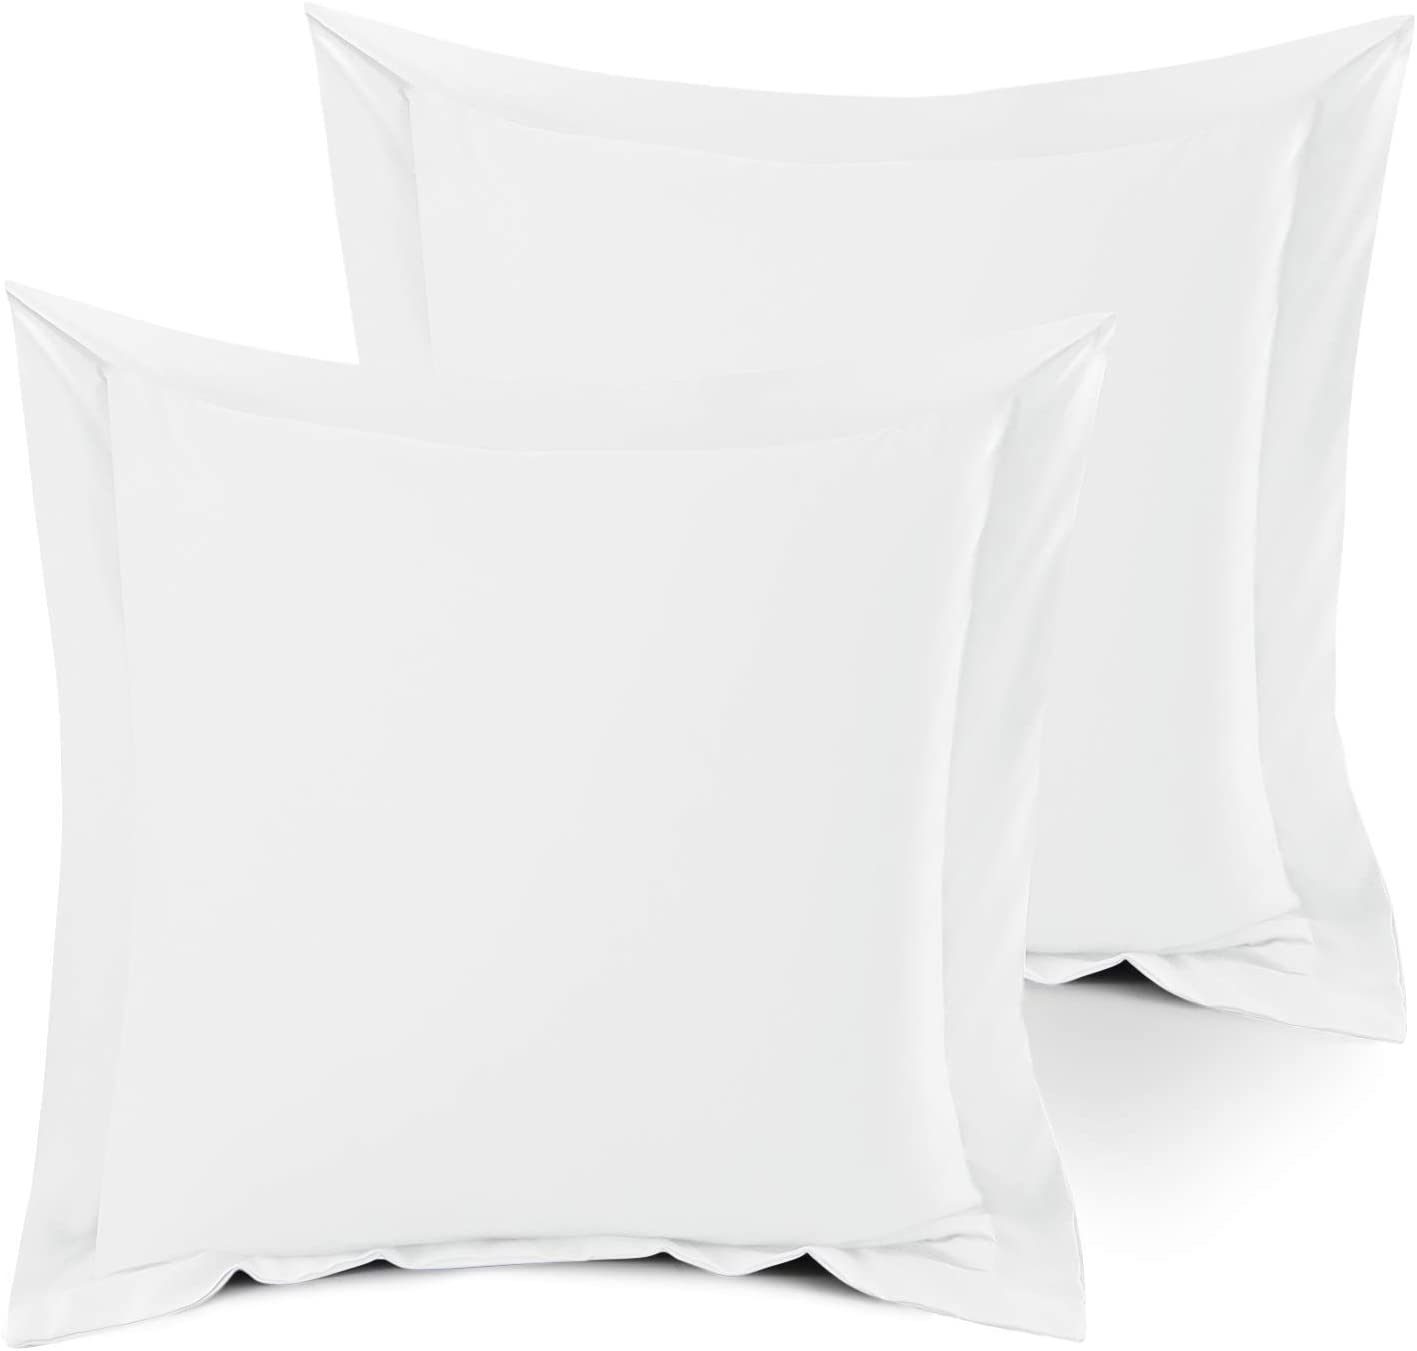 """Nestl Bedding Soft Pillow Shams Set of 2 - Double Brushed Microfiber Hypoallergenic Pillow Covers - Hotel Style Premium Bed Pillow Cases, Euro 18""""x18"""" - White"""